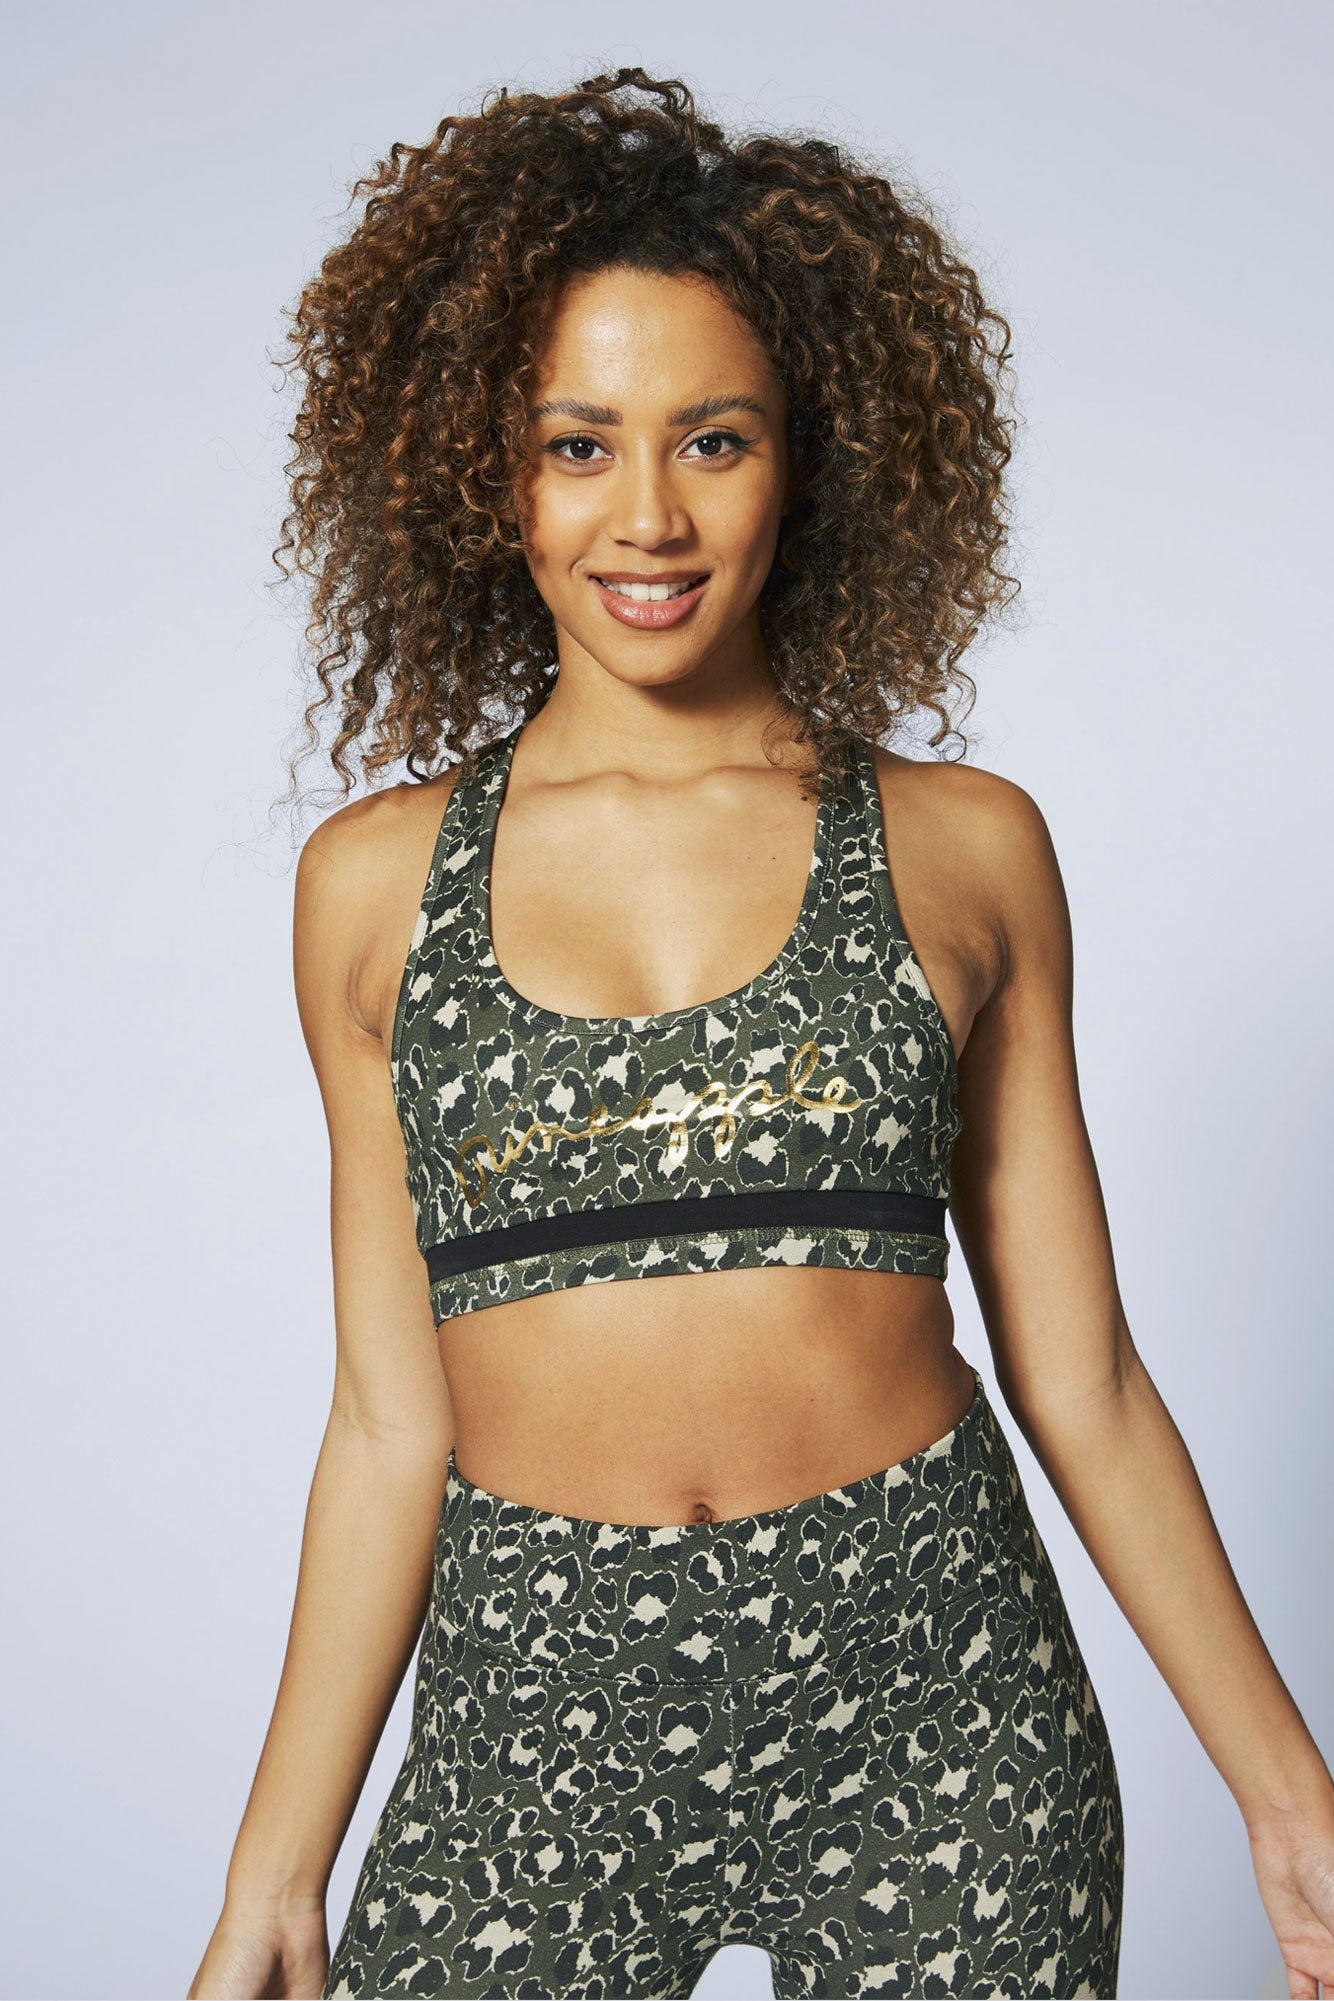 Pineapple Dance Women's Khaki Leopard Racer Bra Top TV16380G5